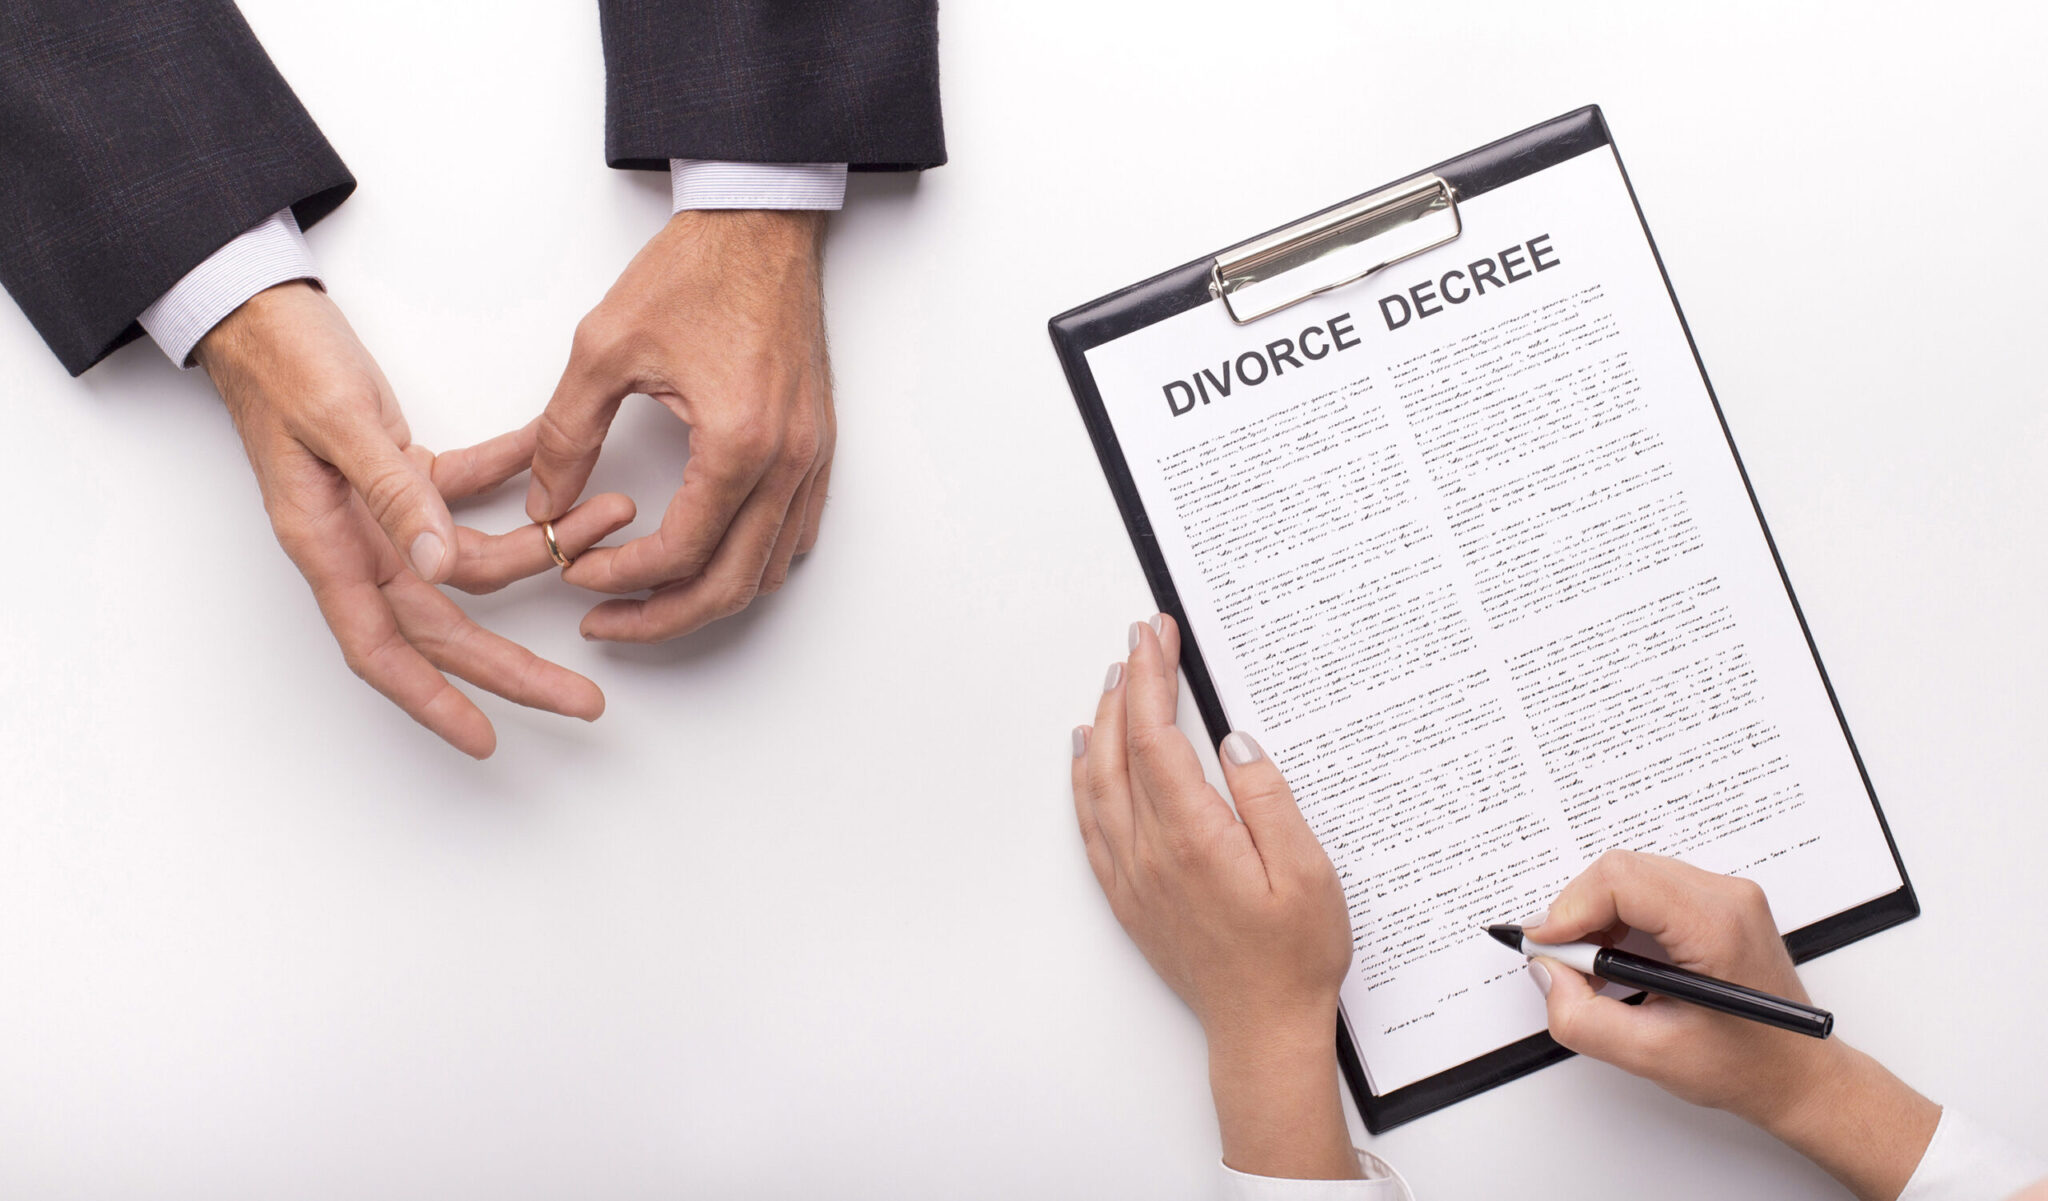 A man from Texas tricks his wife into a divorce